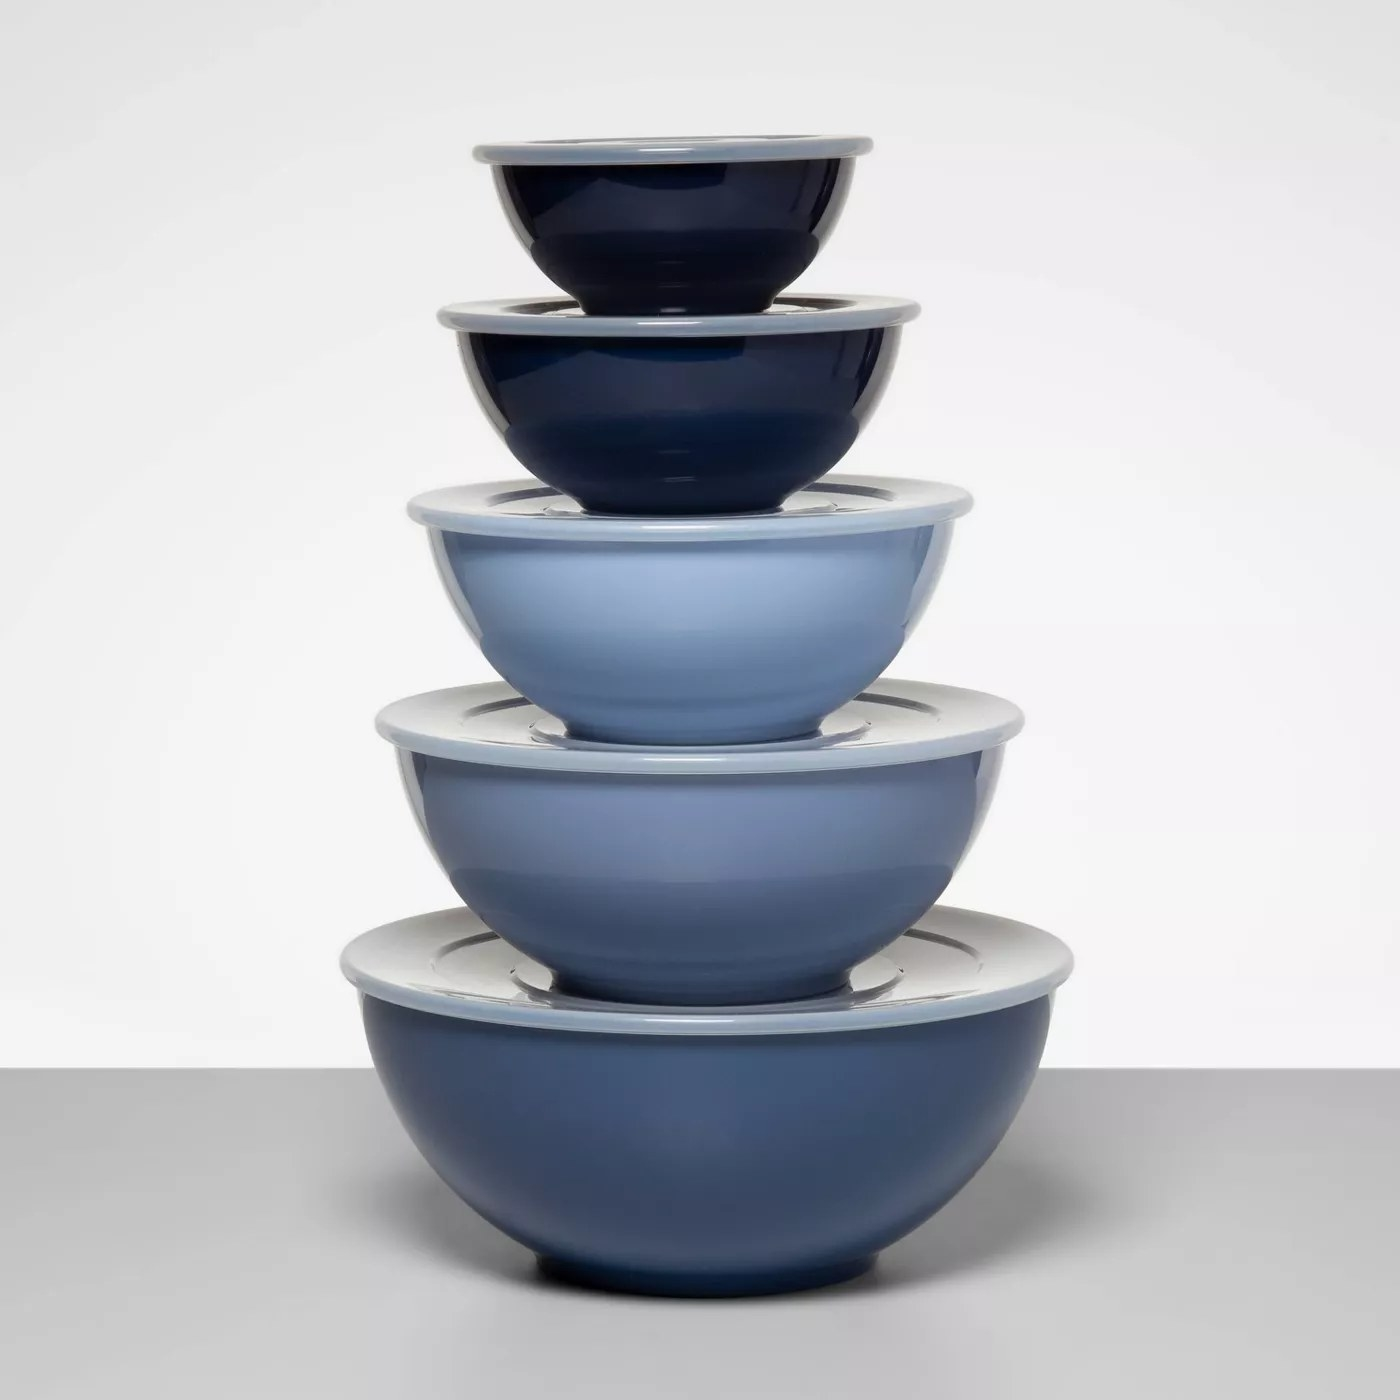 The blue mixing bowls with lids